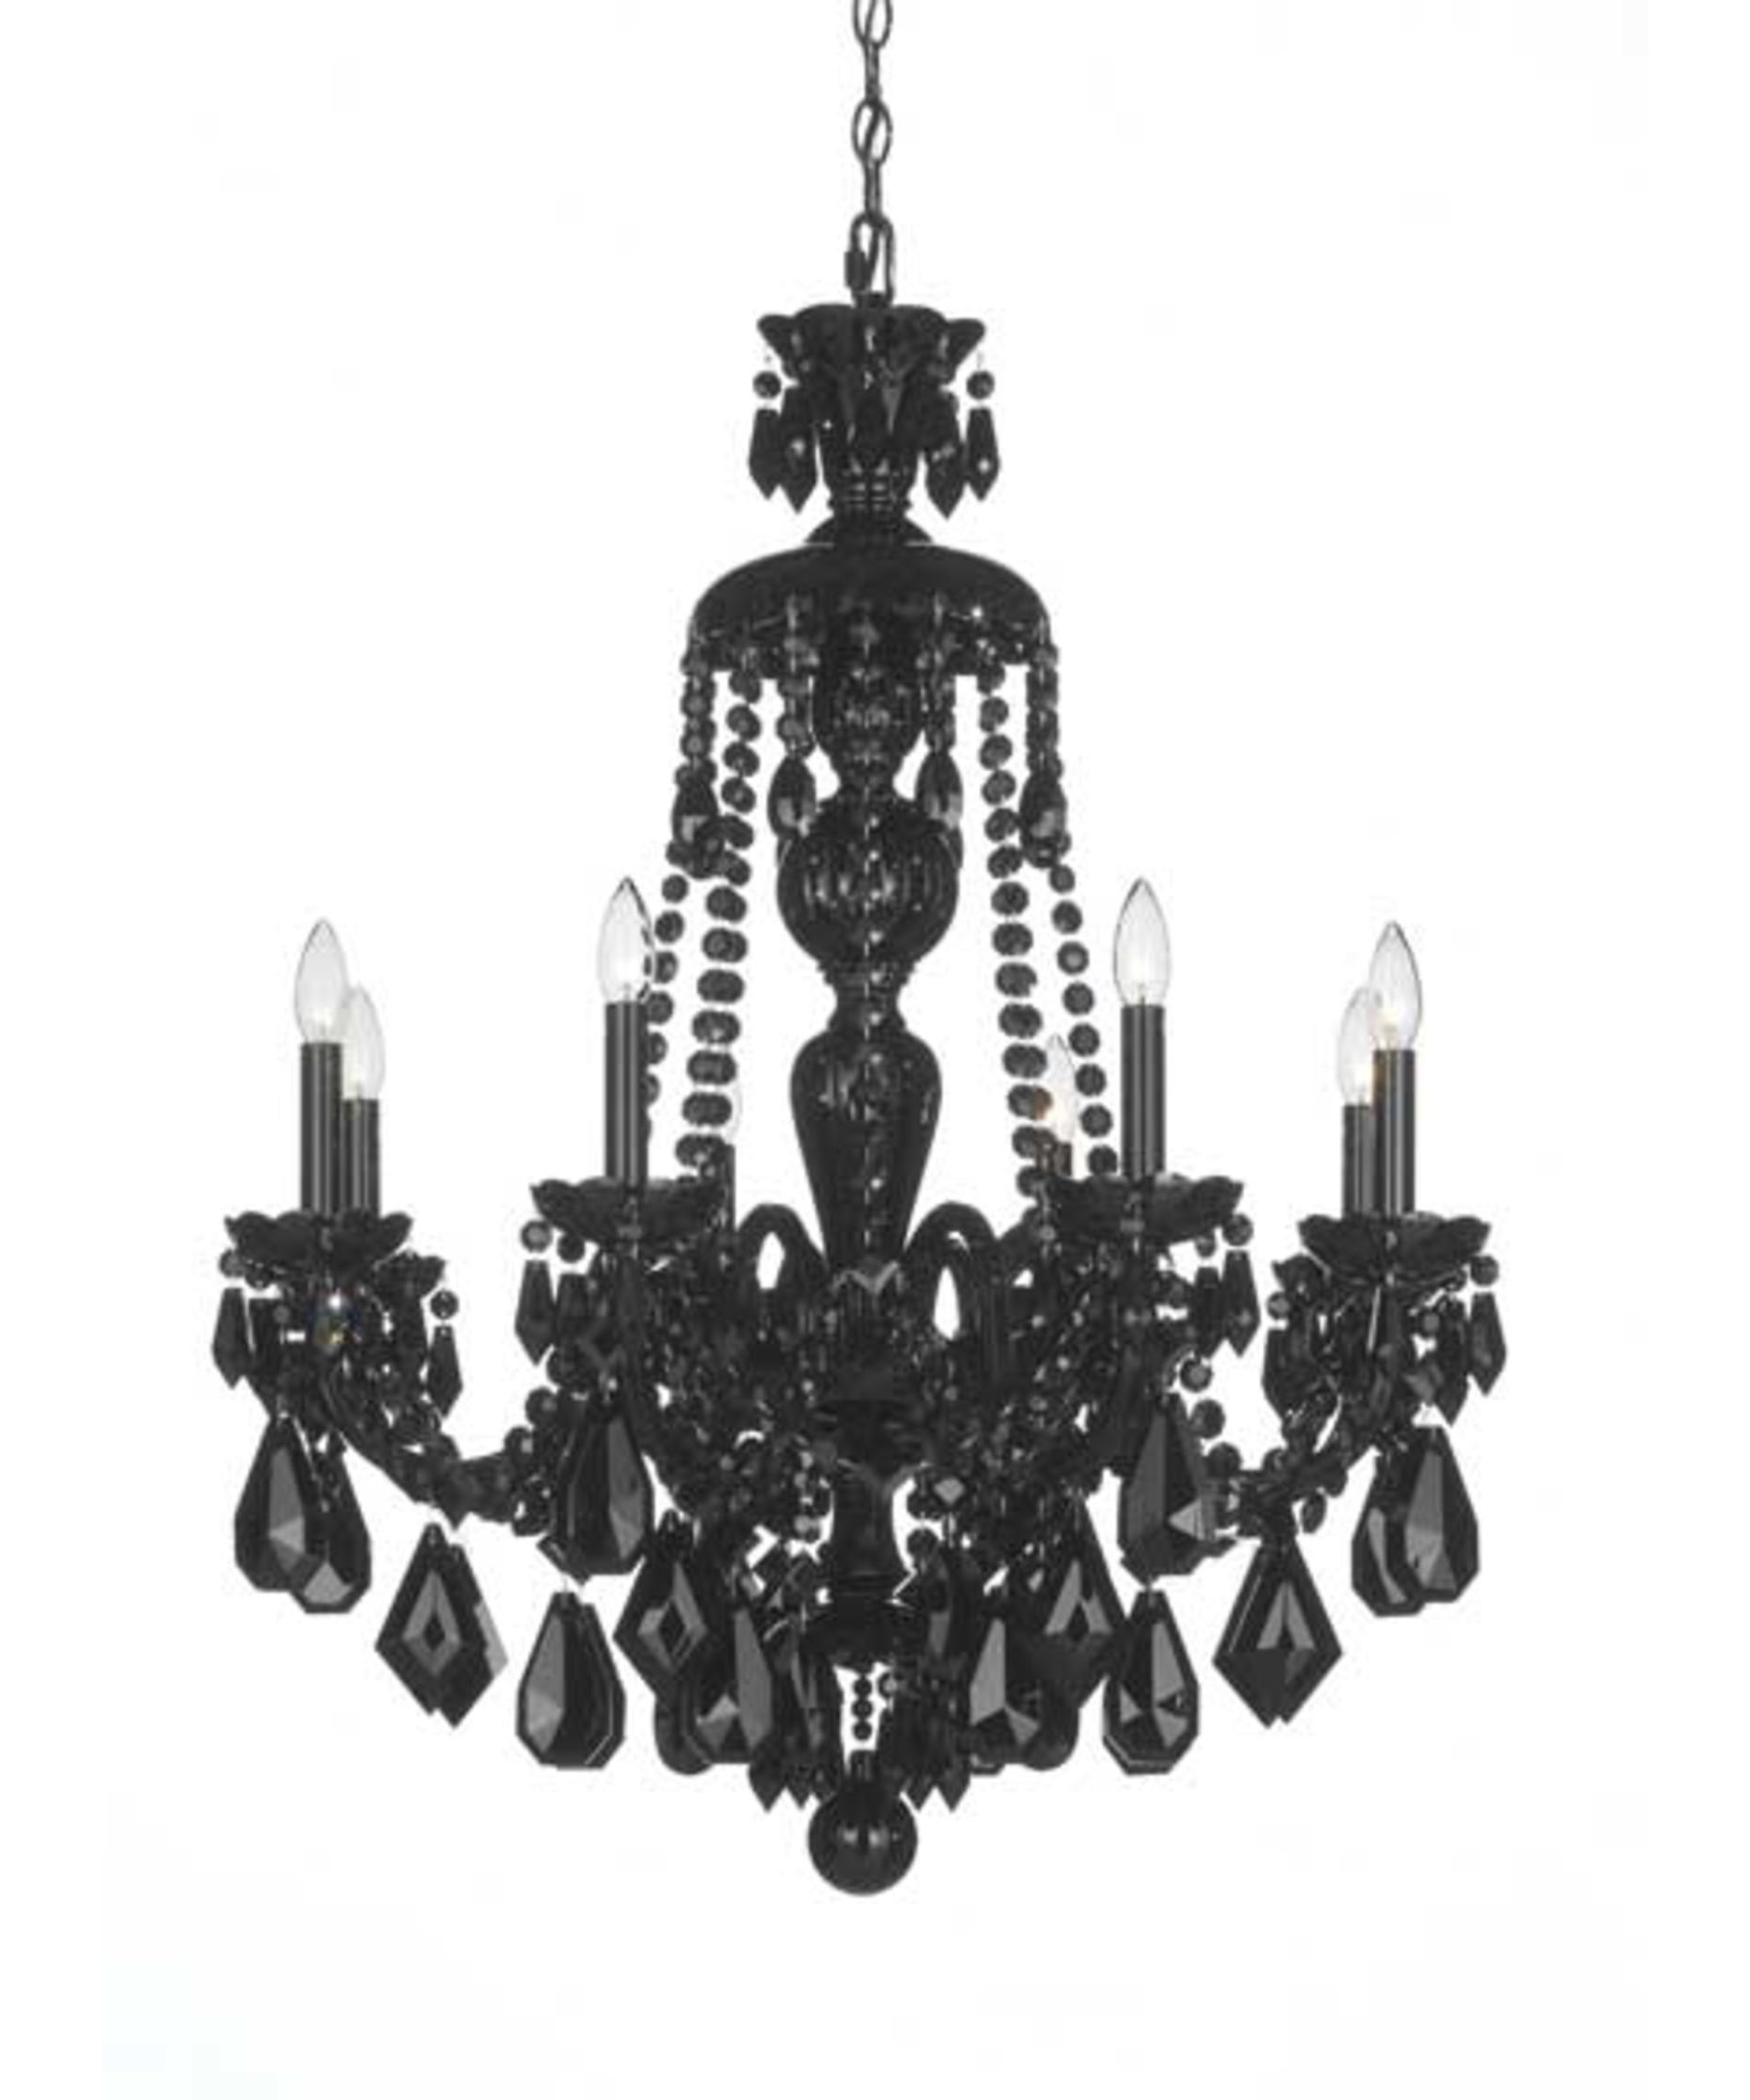 Well Liked Traditional Crystal Chandeliers With Regard To Schonbek 5737Bk Hamilton Black 28 Inch Wide 8 Light Chandelier (View 12 of 15)